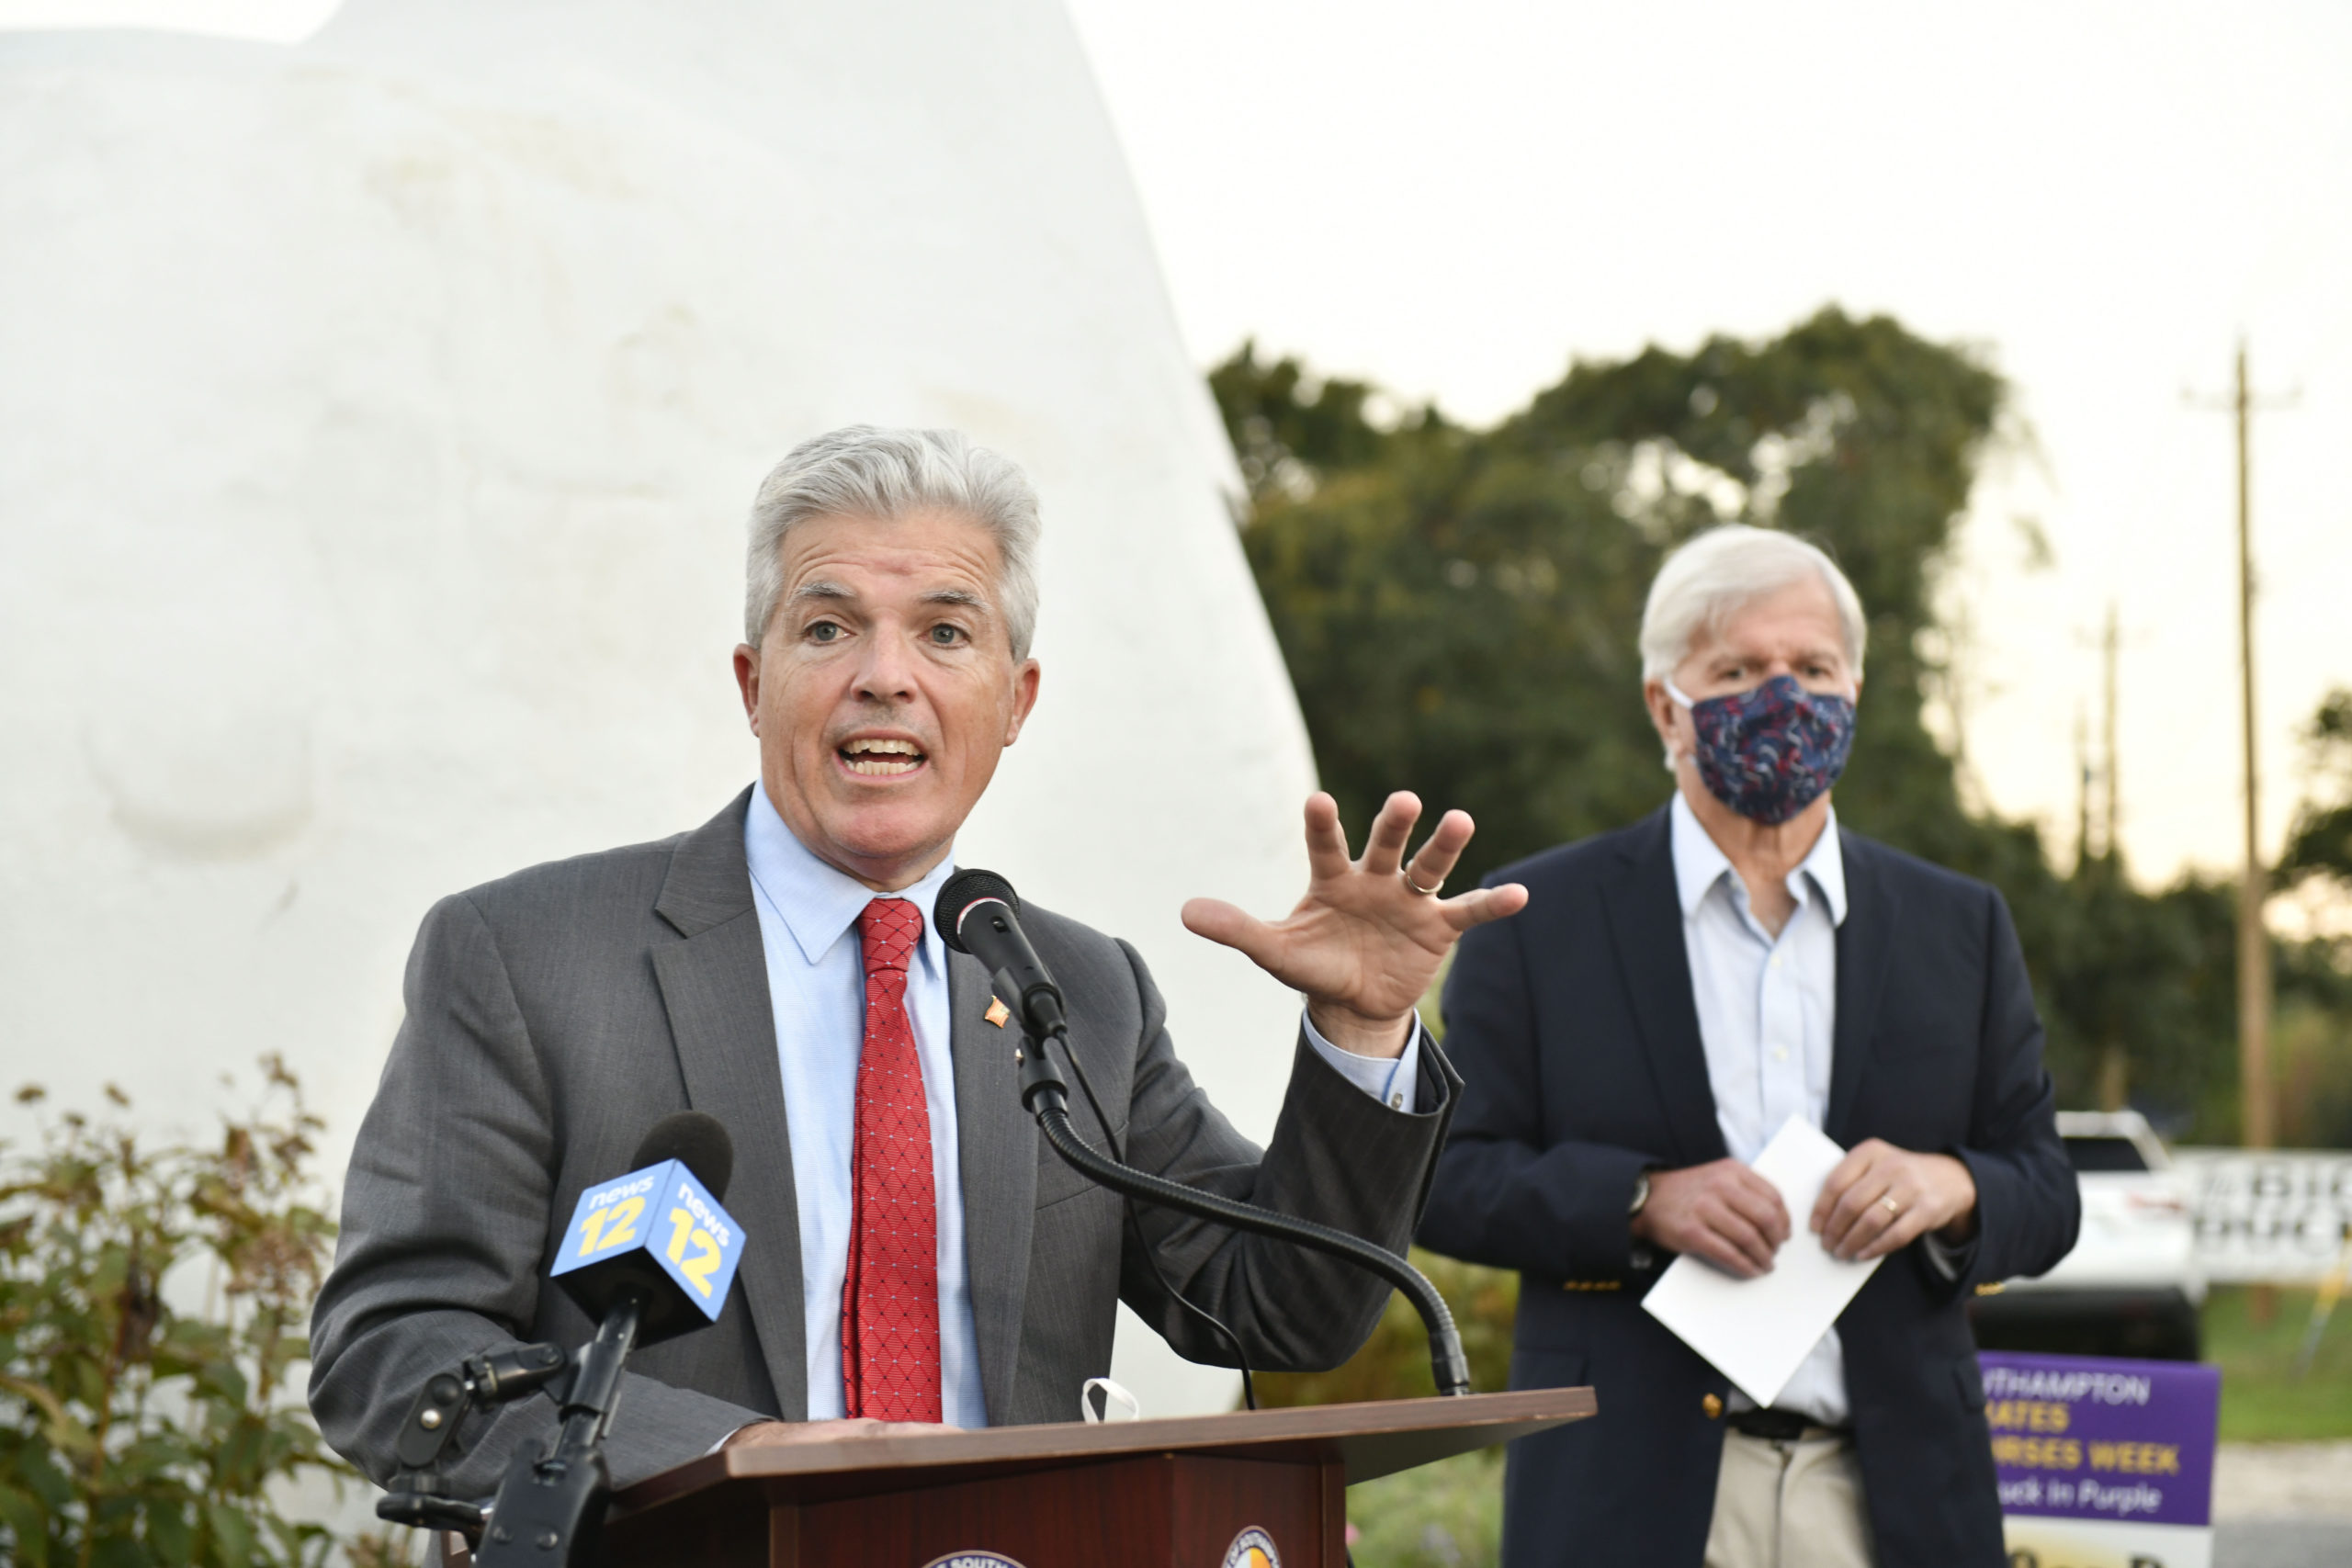 Suffolk County Executive Steve Bellone speaks at the lighting of the Big Duck on October 14, in honor of Emergency Nurses Week.   DANA SHAW